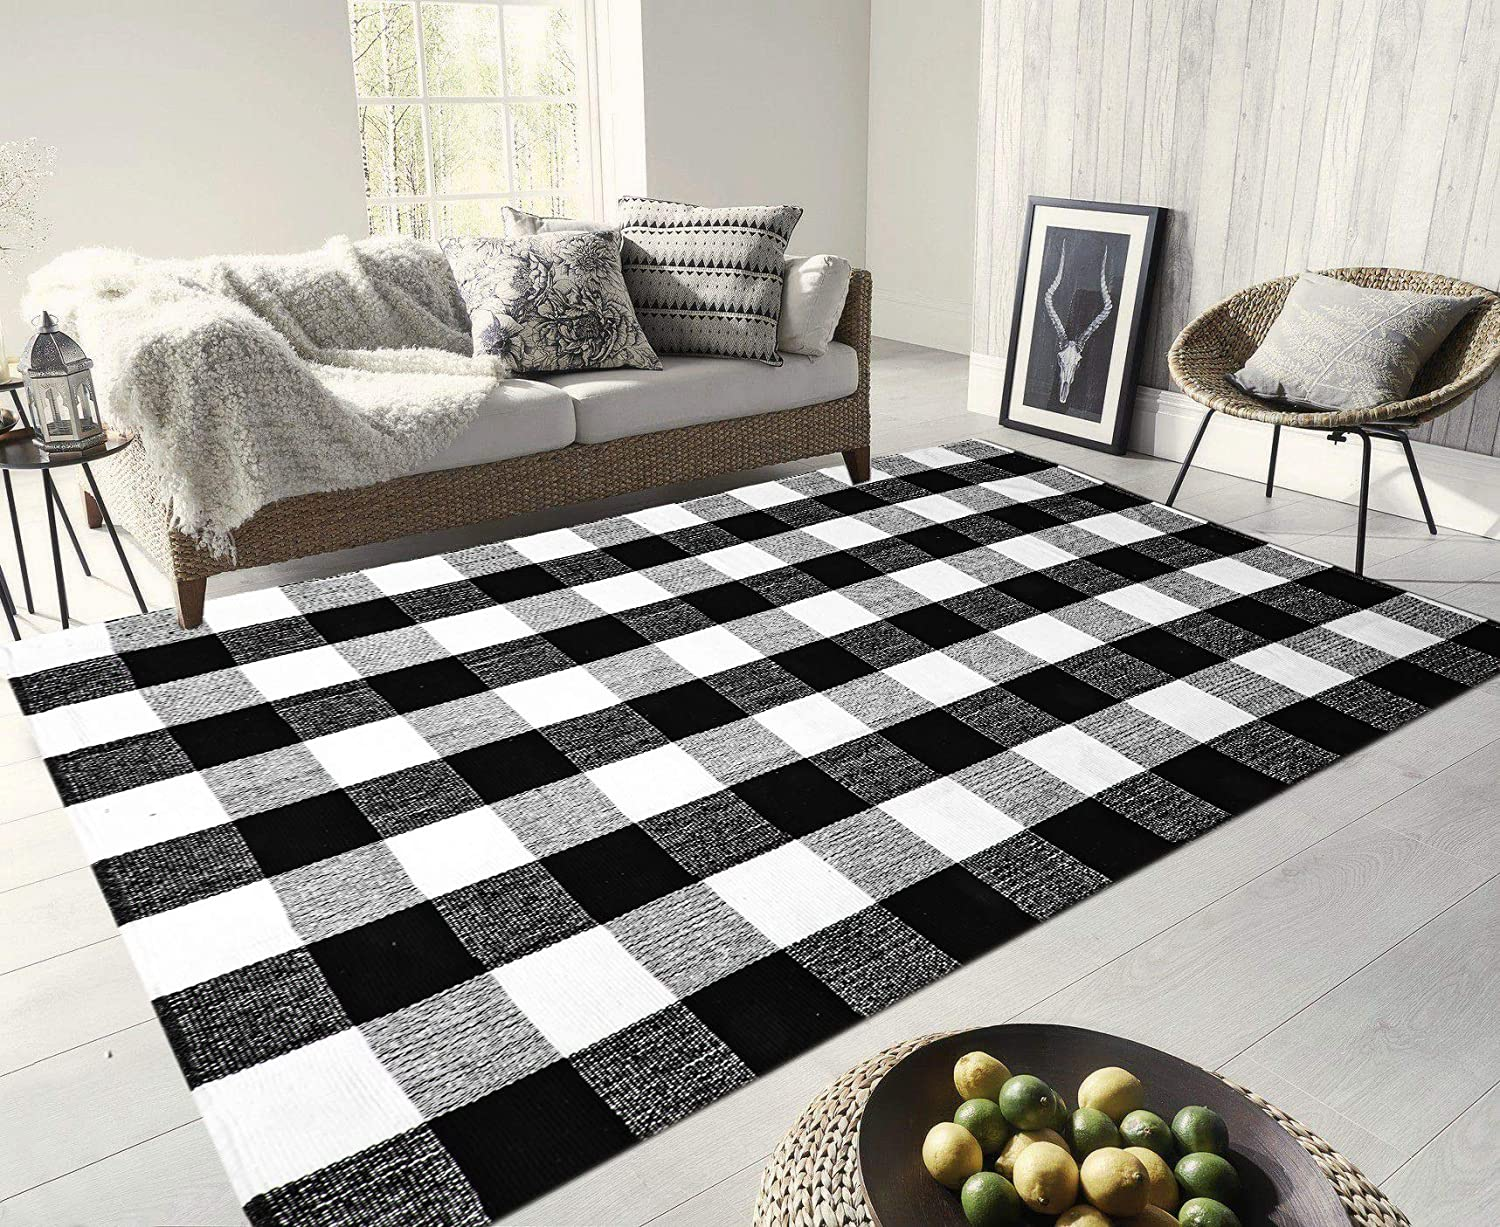 "Egyptian Cotton Tree] 100% Hand-Woven Cotton Large Black & White Washable Rugs, Plaid Area Rug/Runner Rug/, Washable Checkered Rug for Kitchen/Door Way/Laundry(67"" X 90"")"